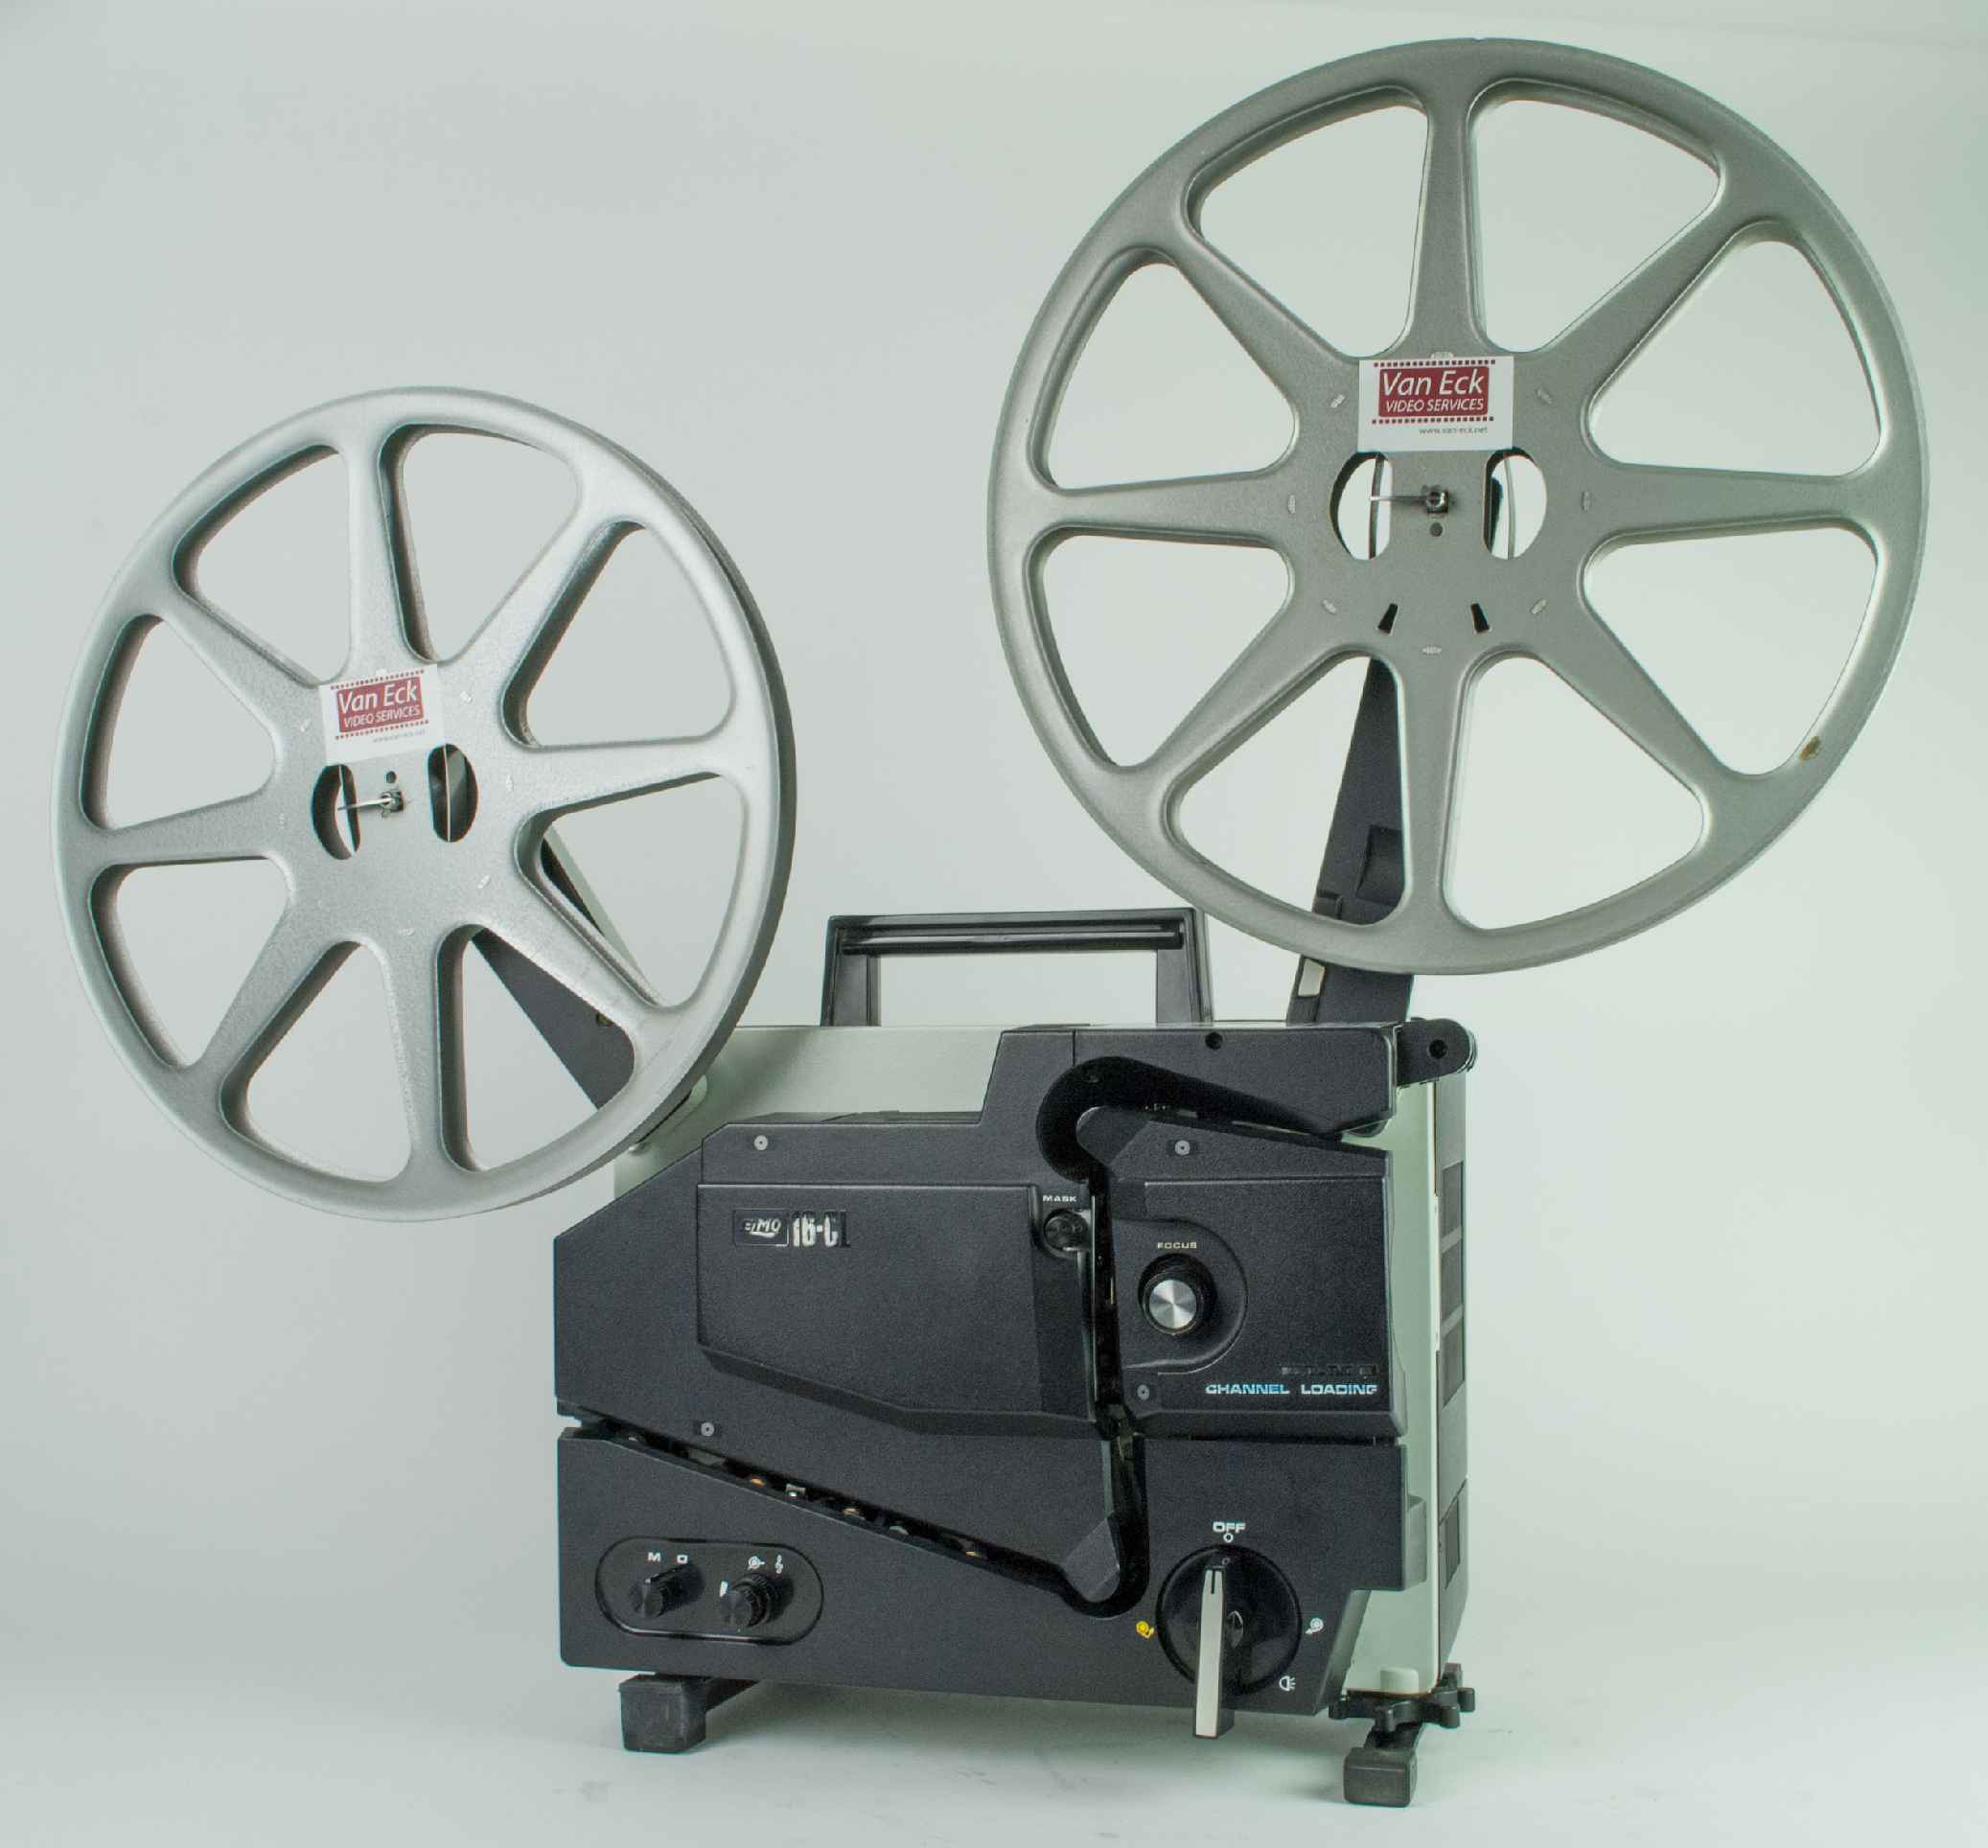 Elmo 16-CL, Film Projectors - Spare Parts and Information Van Eck